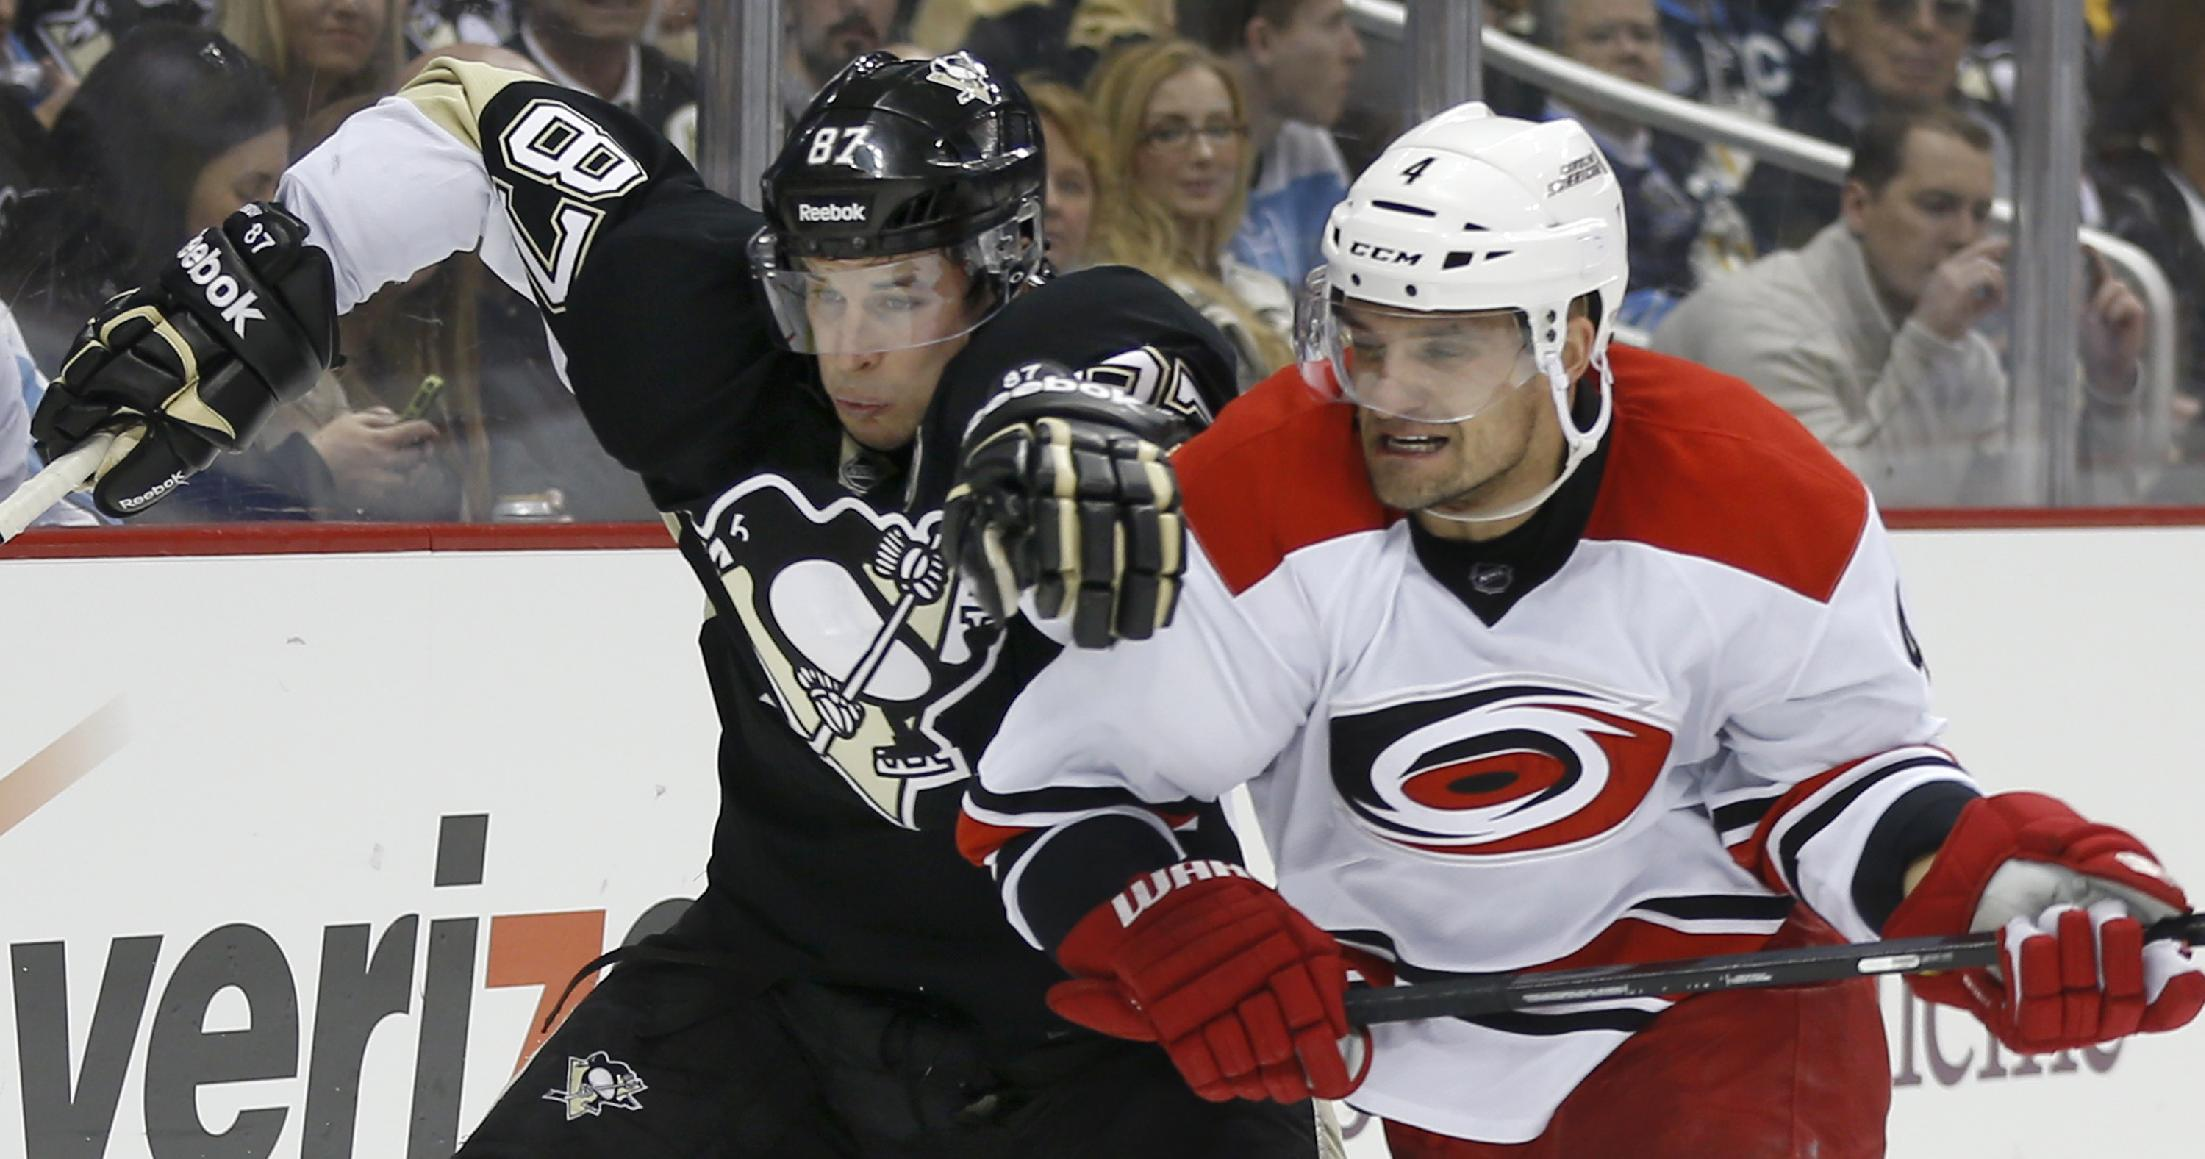 Pittsburgh Penguins' Sidney Crosby (87) and Carolina Hurricanes' Andrej Sekera, of Slovakia, chase after a puck along the bords  during the second period of an NHL hockey game onTuesday, April 1, 2014, in Pittsburgh